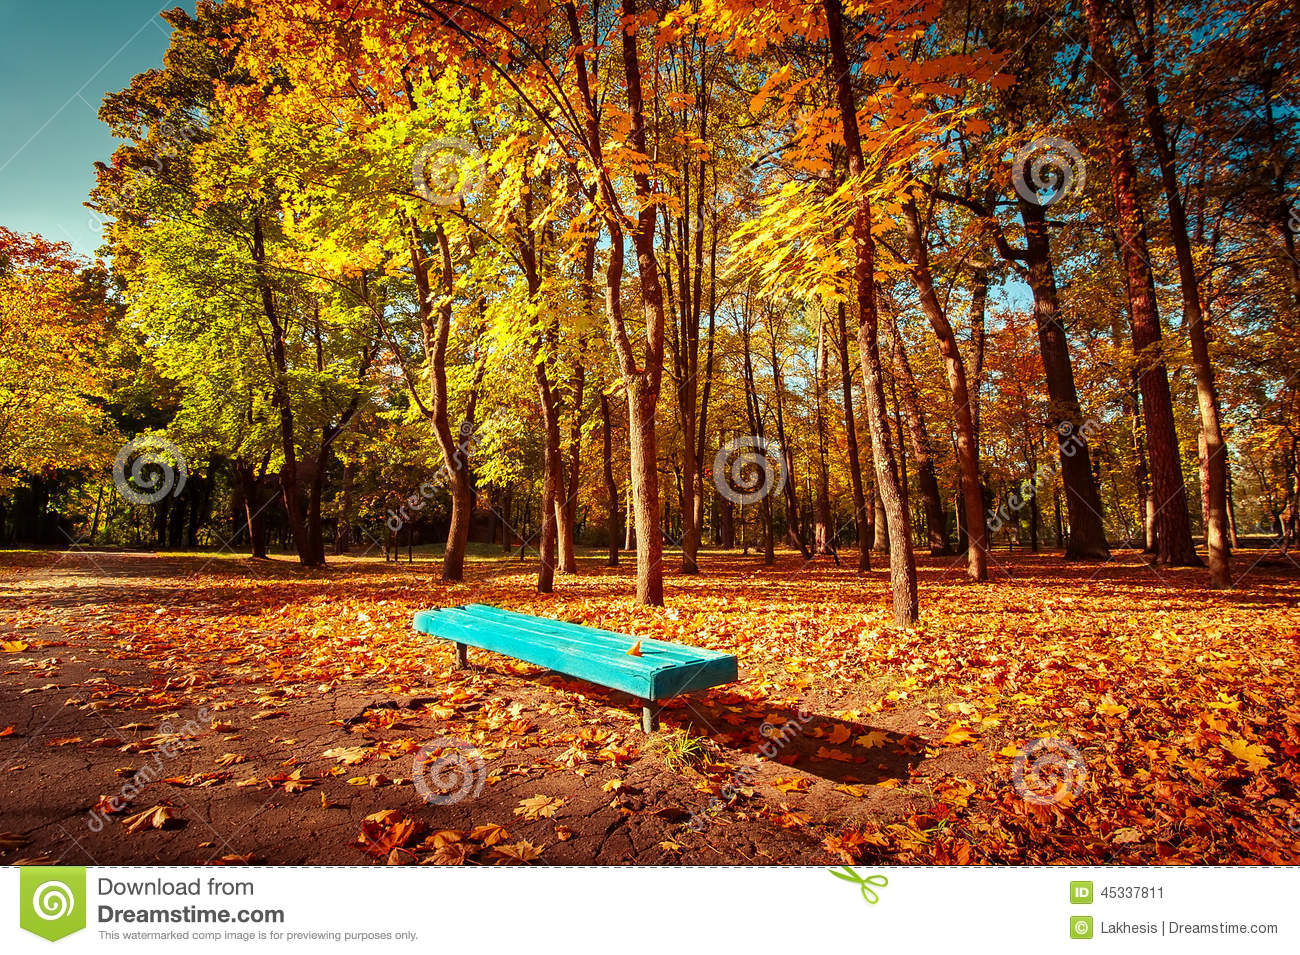 Sunny Day In Outdoor Park With Colorful Autumn Trees And ...